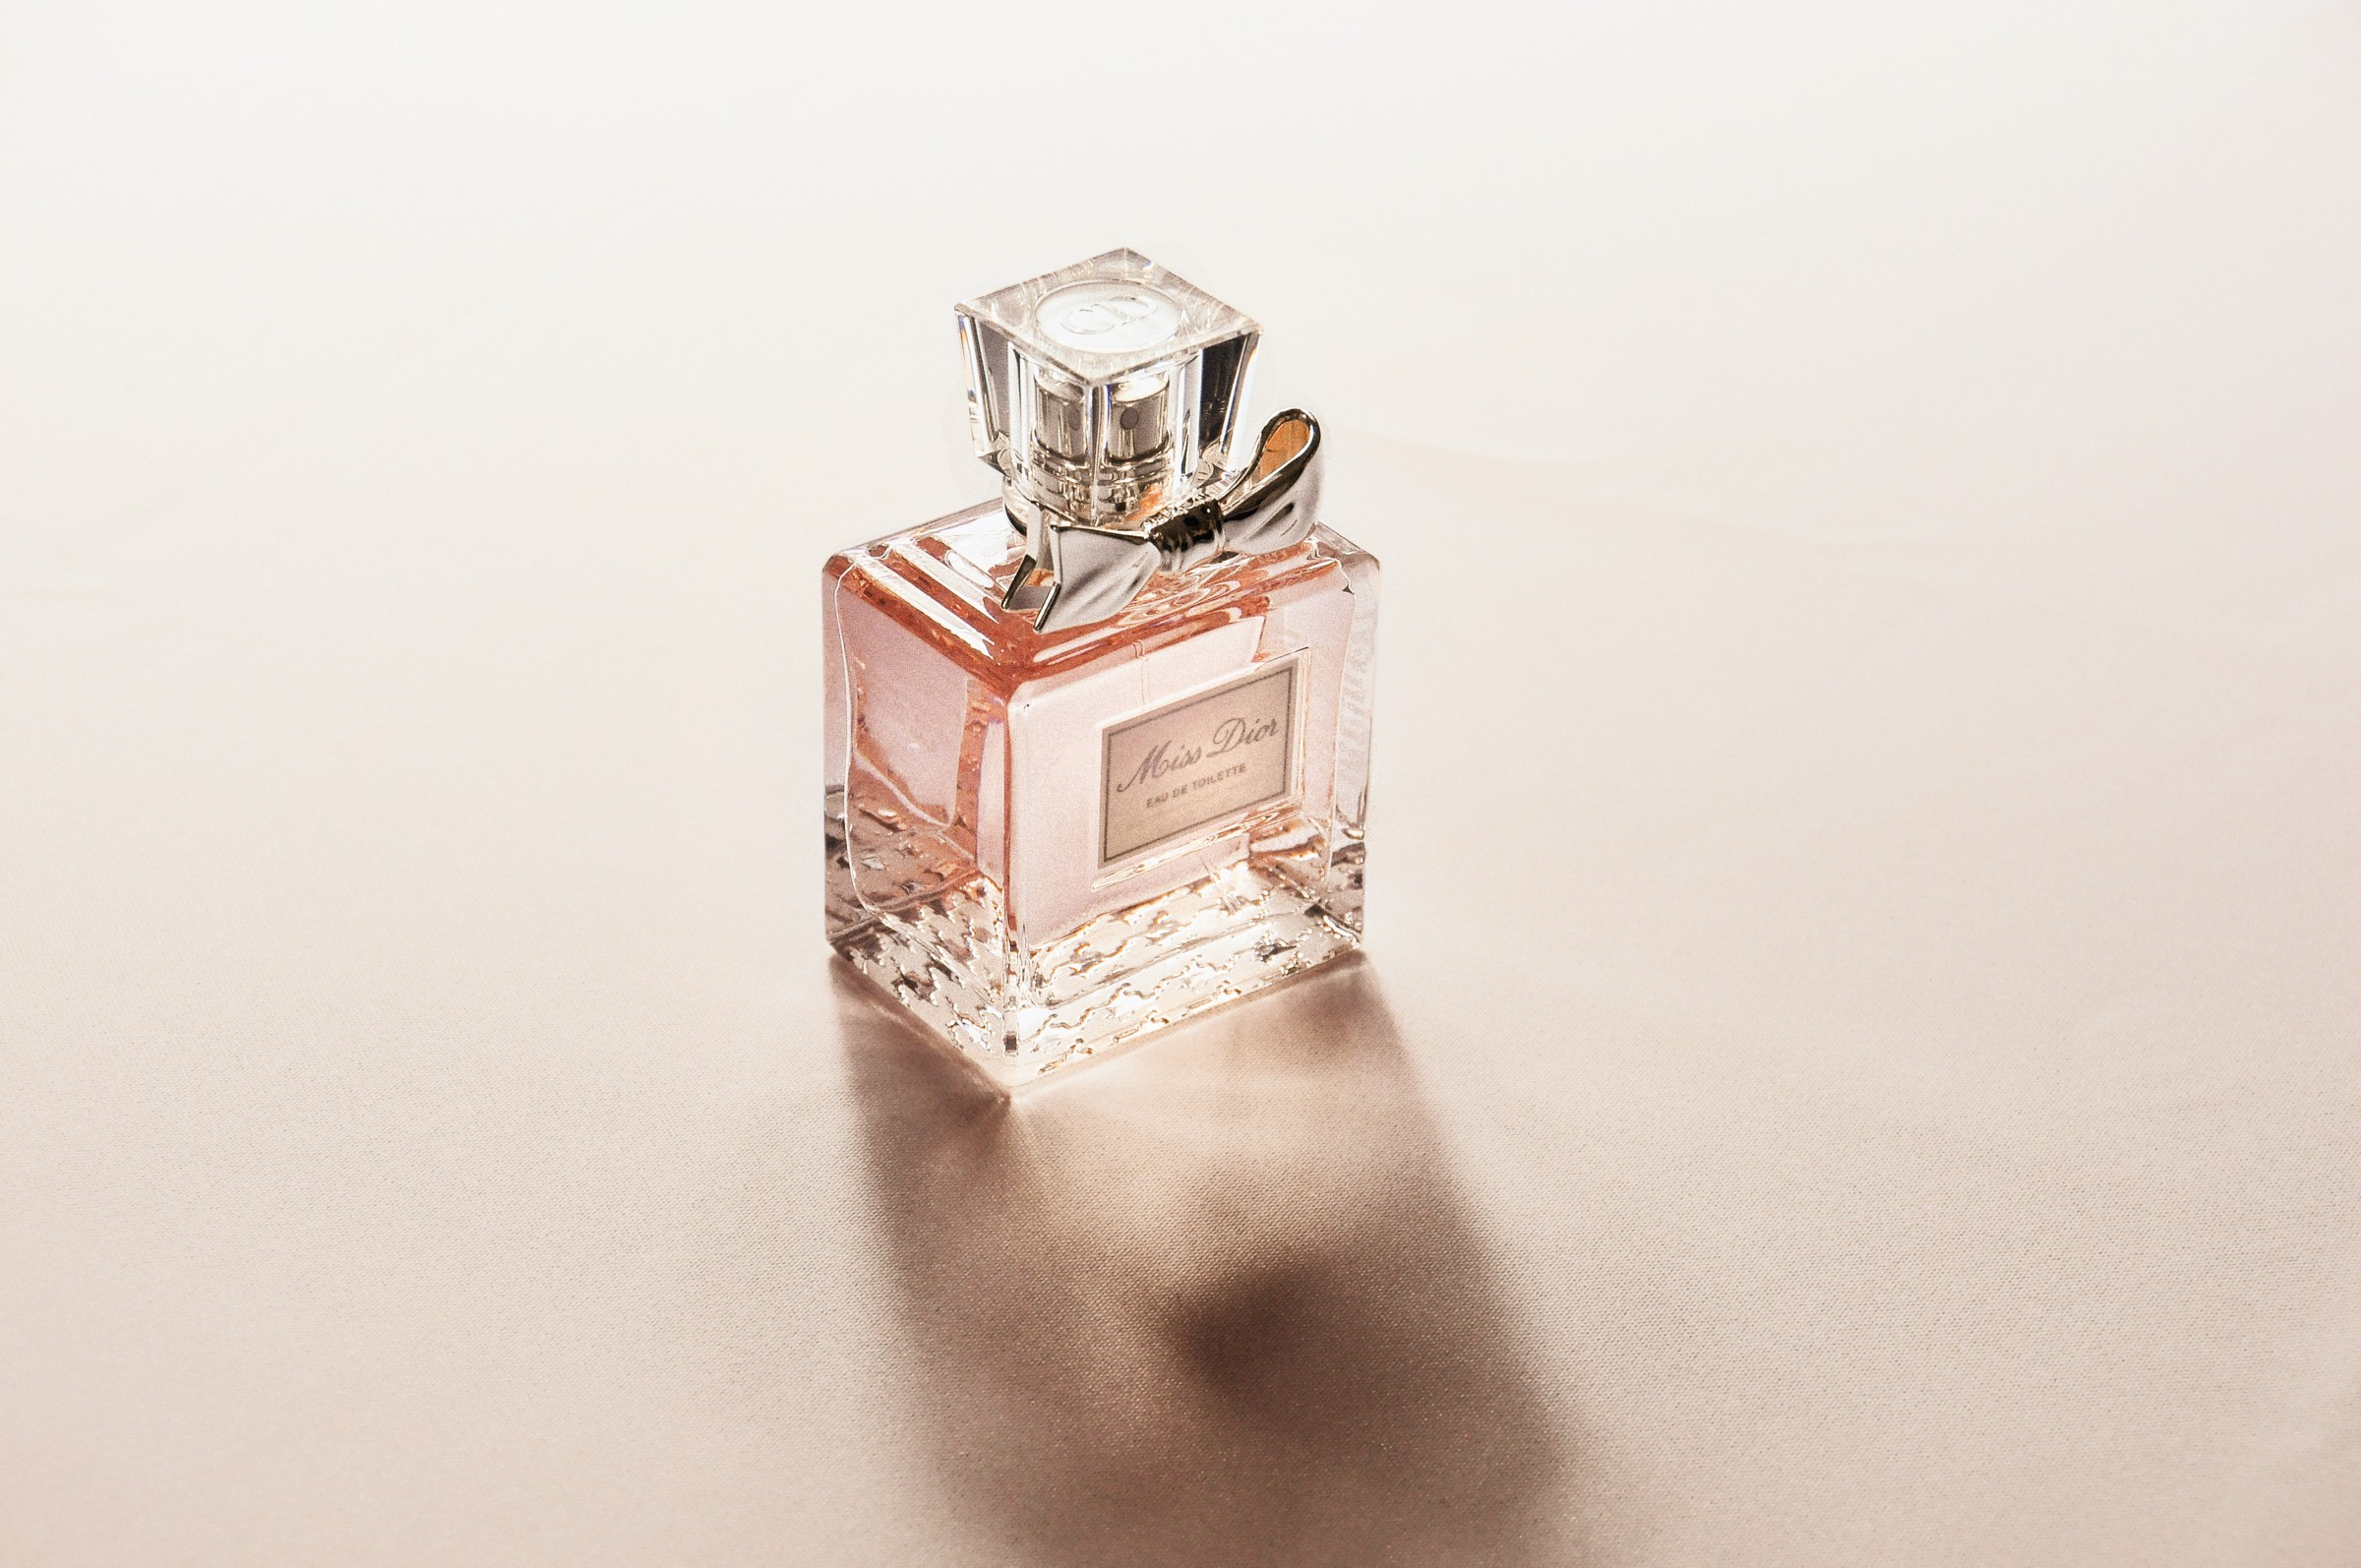 Perfume Recommendations using Natural Language Processing